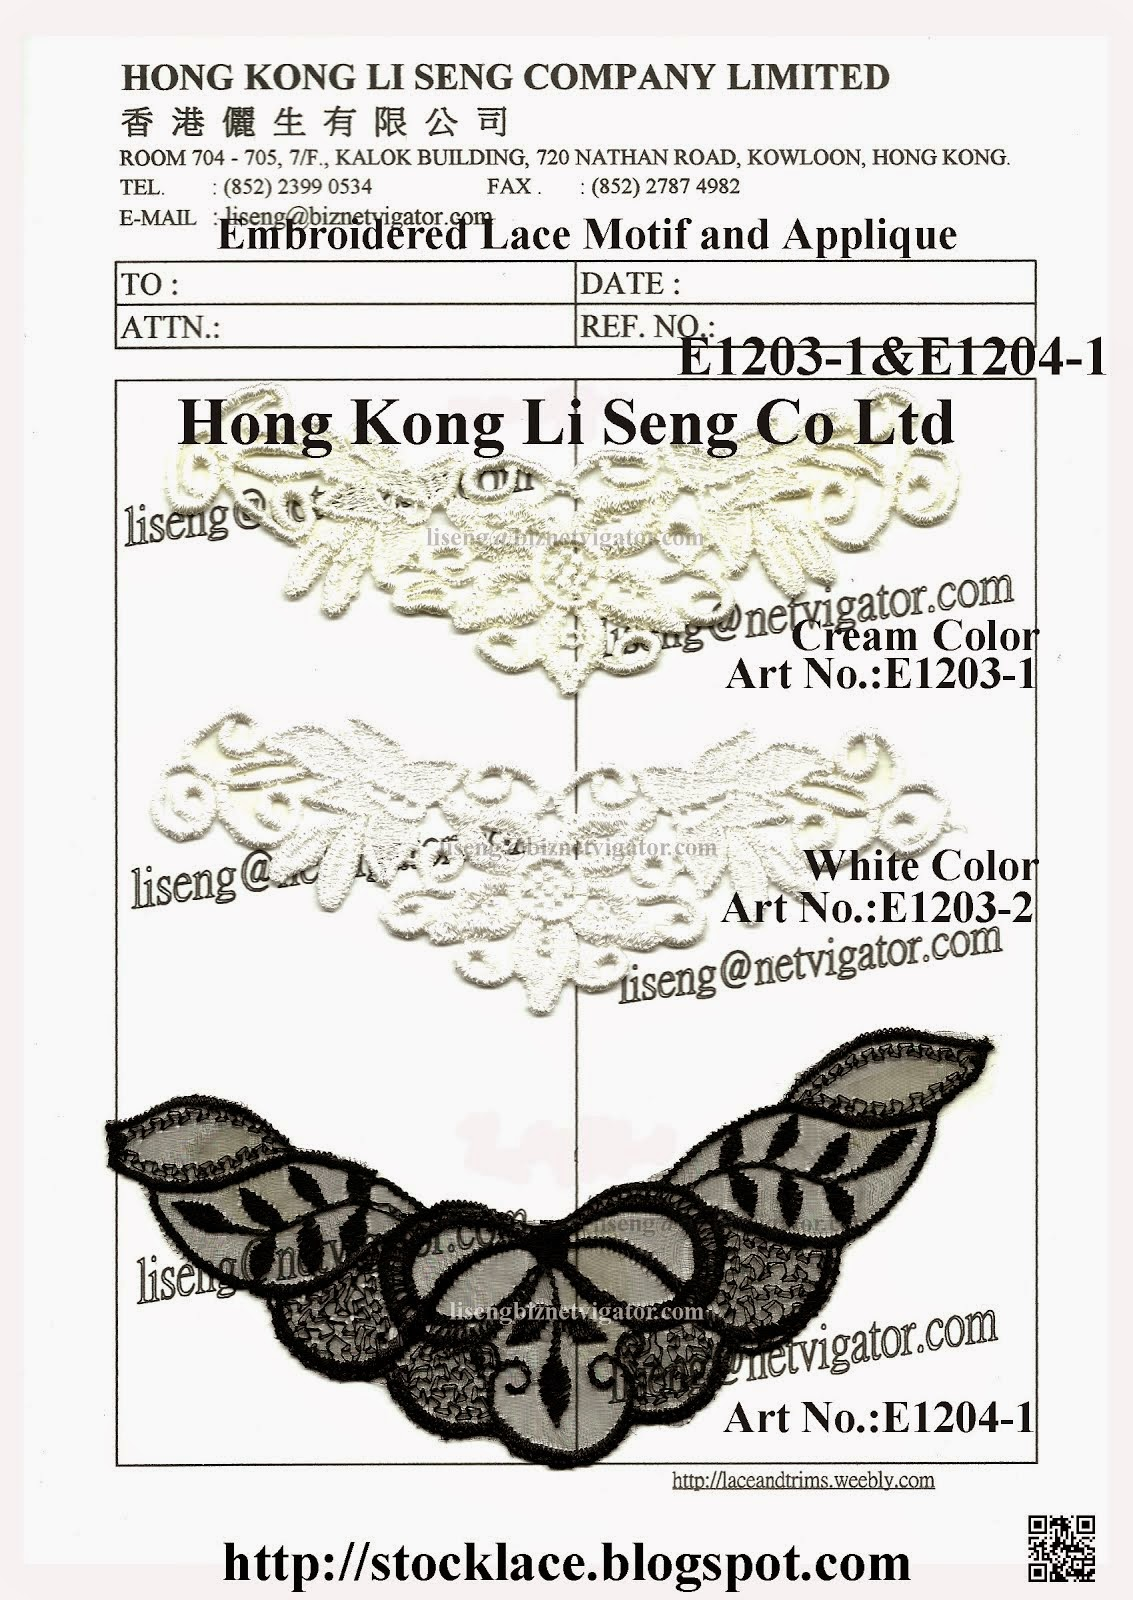 Small Order for stocklot Lace Motif and Applique Manufacturer - Hong Kong Li Seng Co Ltd